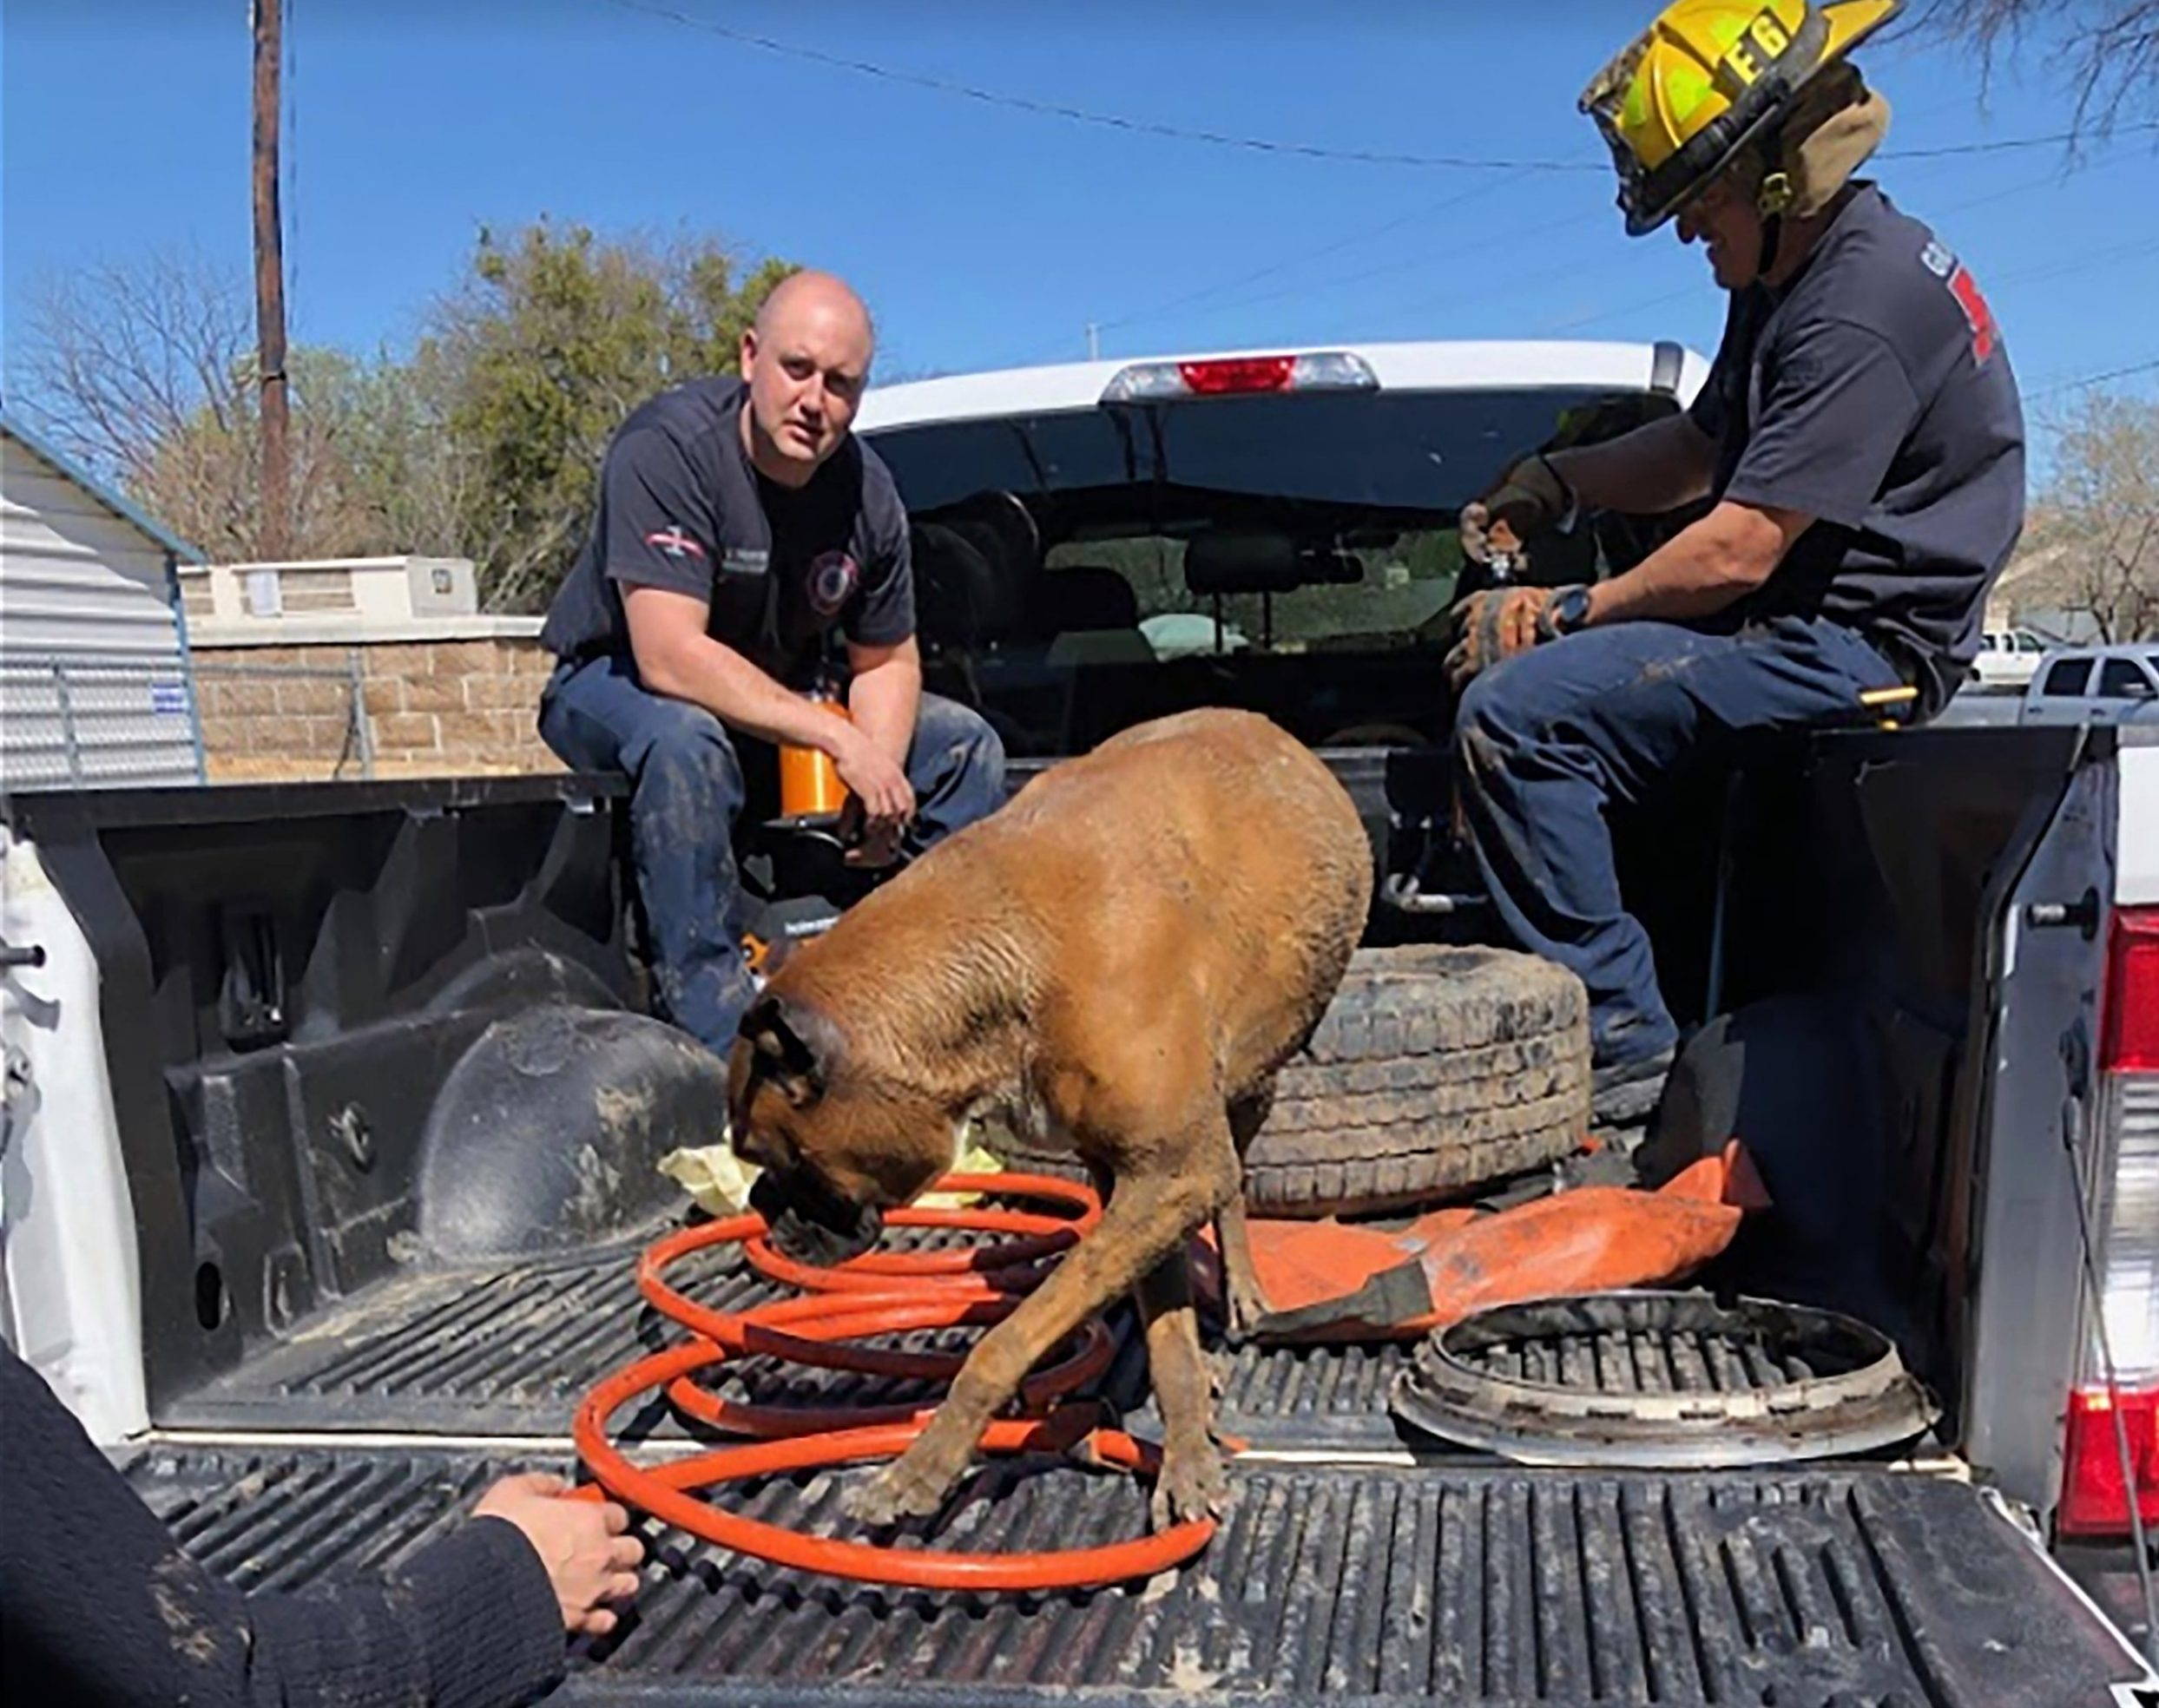 "Firefighters had to rescue this hapless pooch after it got its head stuck in a wheel rim. The owner of the unlucky boxer dog was left stunned when he discovered his curious pet with its head stuck through the metal rim of one of his wheels on Thursday, March 14. However, the quick thinking owner knew exactly what to do. He loaded up the dog, and the wheel, into the back of his truck and rushed over to Fire station 6 in Grand Praire, Texas. It took the firefighters approximately an hour to cut the rim apart enough for the dog to pull herself out. According to the rescuers, it was especially hard to free the animal since the pup had so much extra skin around her neck. The owners, like the dog, were very thankful and relieved. A spokesperson for Grad Praire Fire, said: ""Our buddy was pleased to see Station 6 B-shift come to his rescue! The rim had to be cut apart using a small saw to make room for the dog's head to pull out. He thanked them with plenty of doggy kisses!"". 15 Mar 2019 Pictured: Boxer dog with head stuck in wheel. Photo credit: Grand Prairie Fire / MEGA TheMegaAgency.com +1 888 505 6342"